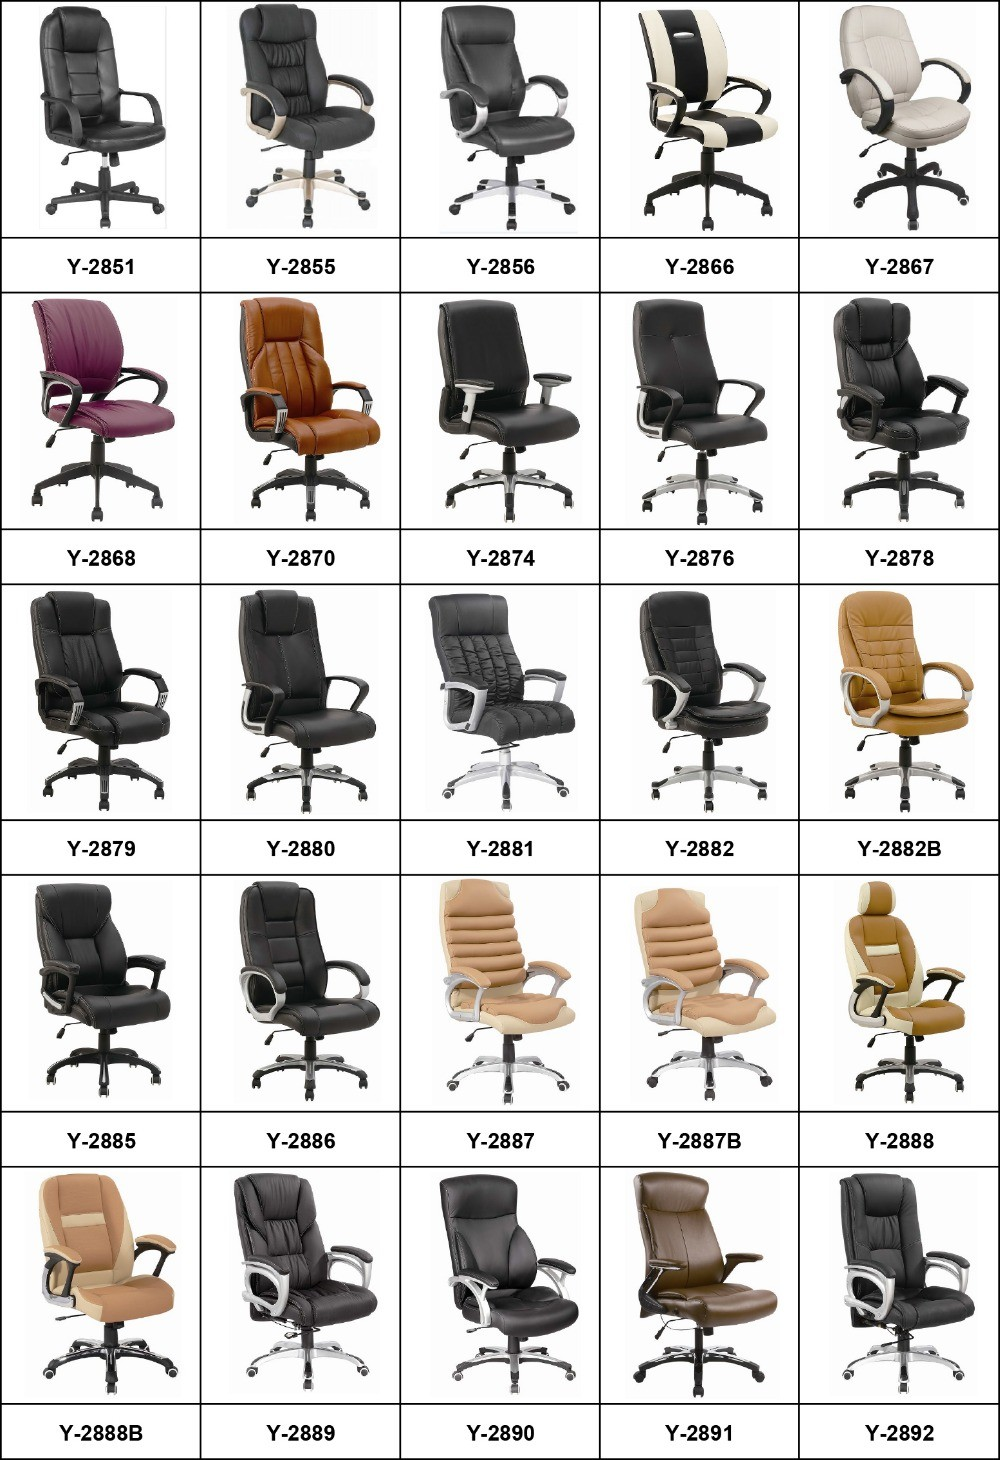 Y-2742 Classic Executive Home Study Computer Office Chair with Prices for Chairs